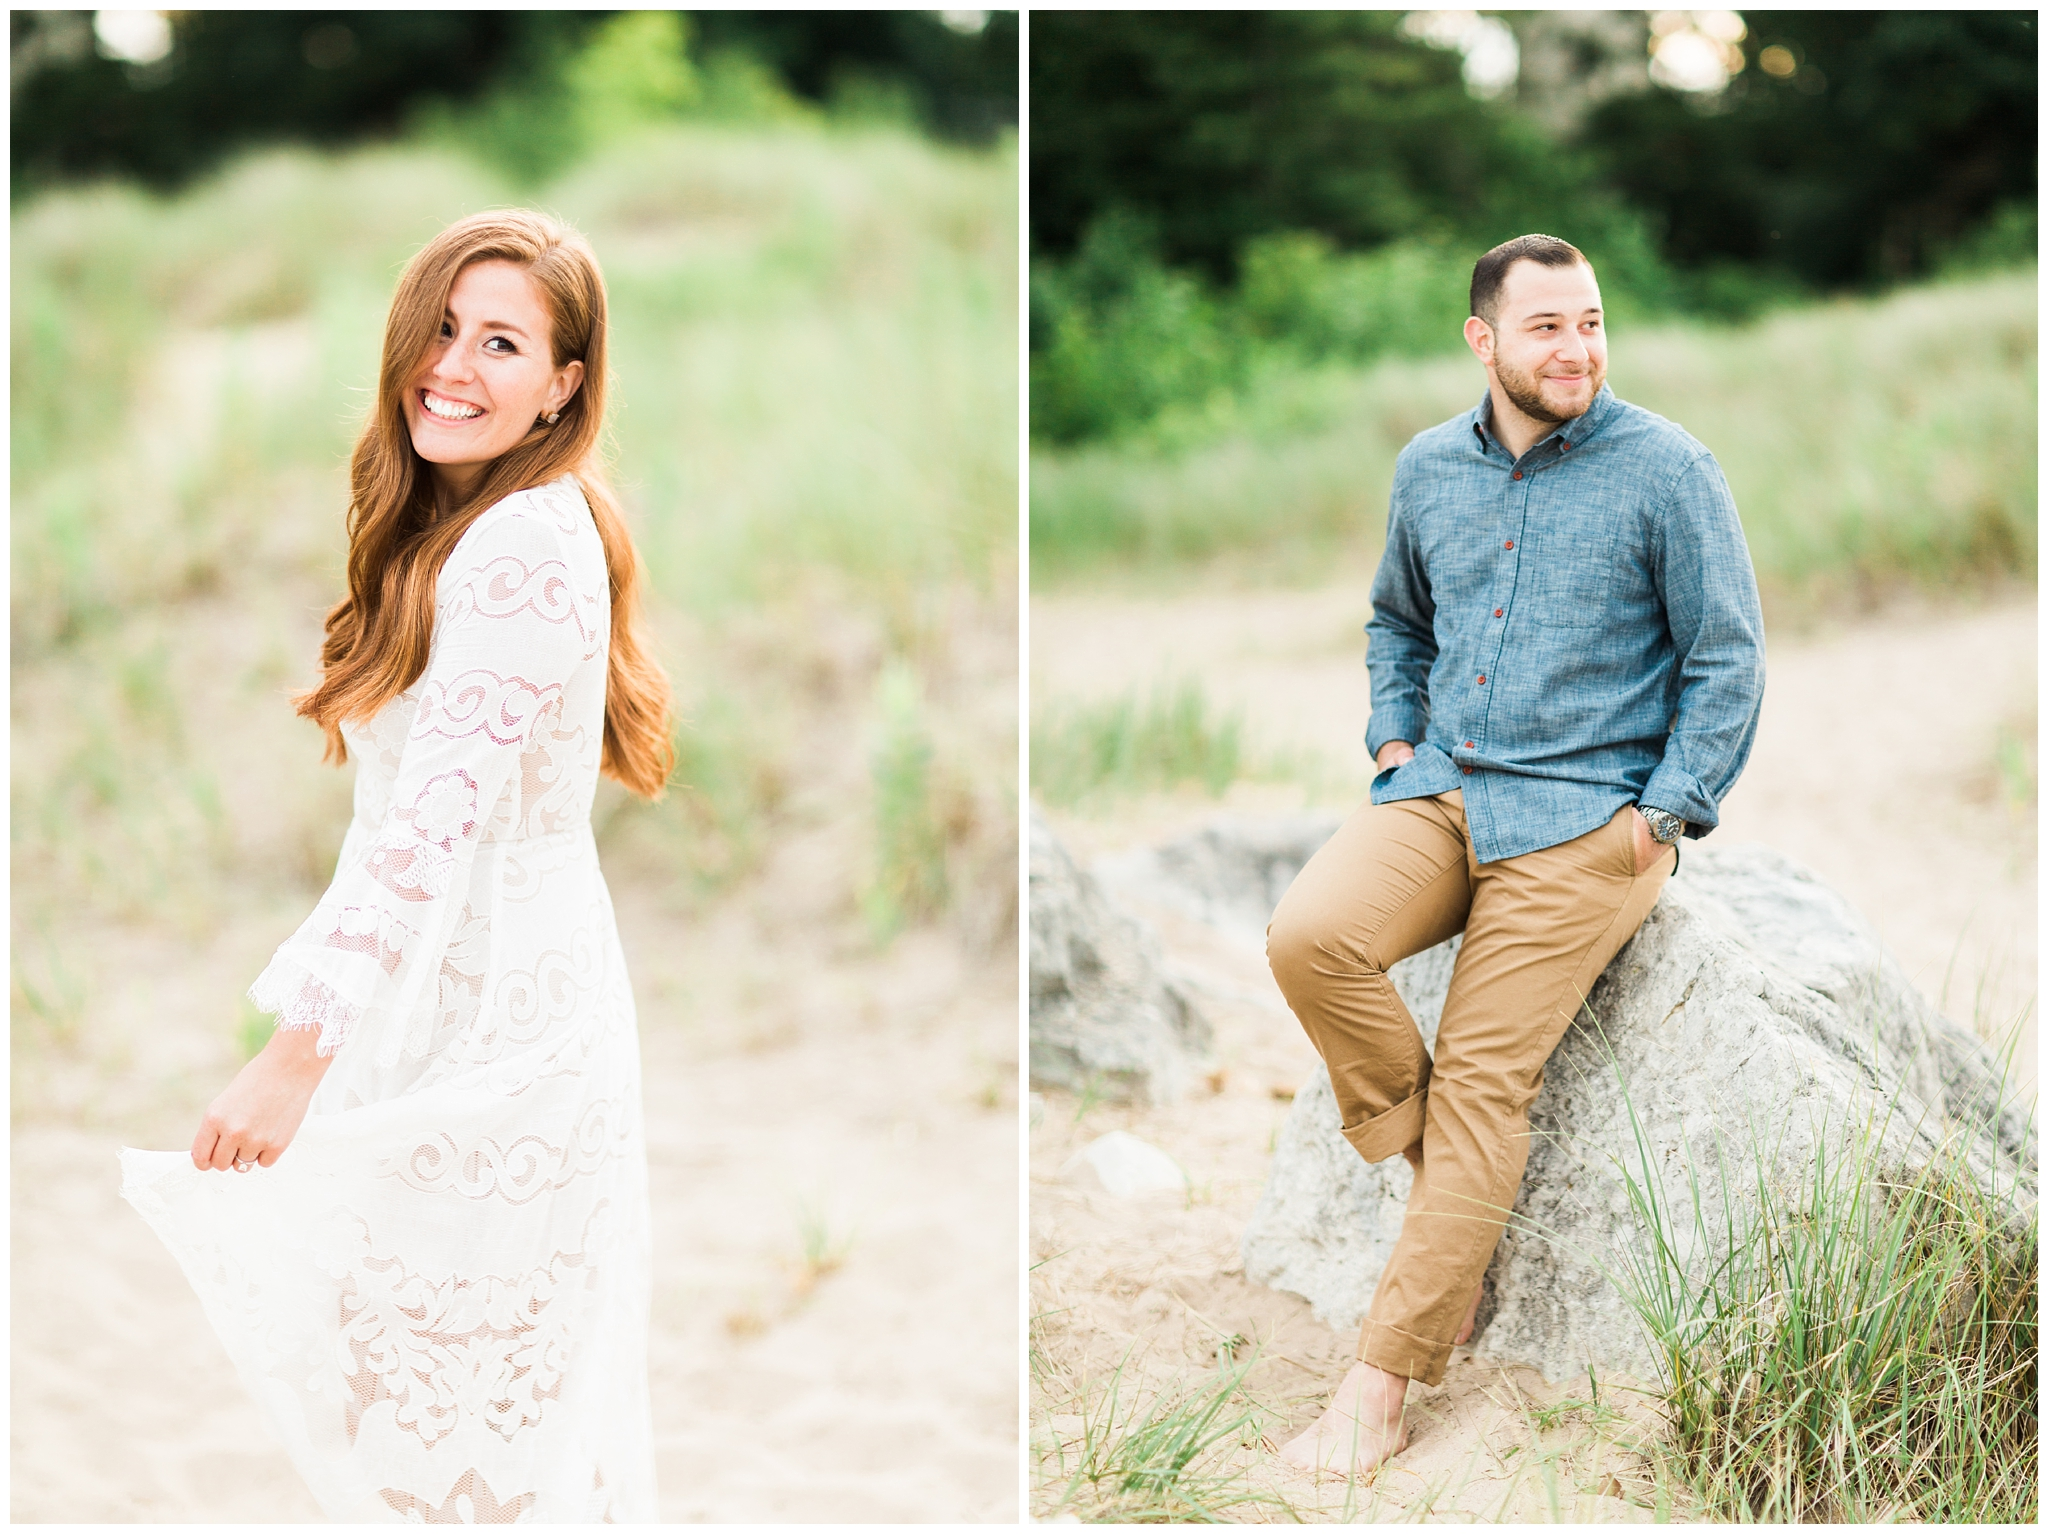 RebeccaHaleyPhotography_chicagoengagementsession_lakemichiganengagementsession_coloradoengagementphotographer_evanstonengagementphotographer_lighthousebeach_lighthousebeachengagementsession_0018.jpg